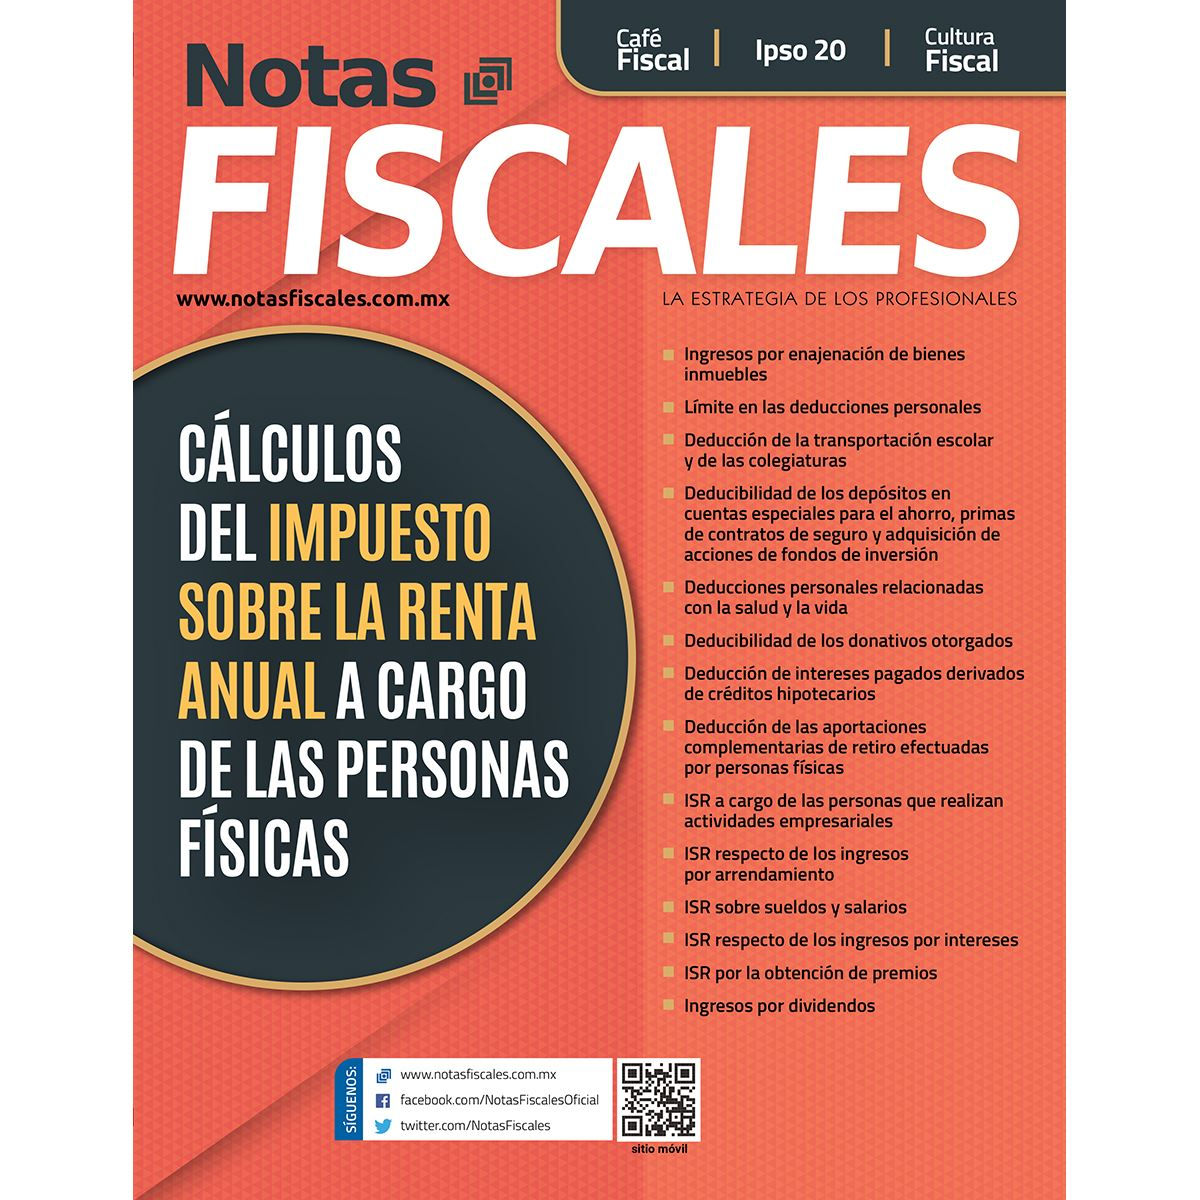 Notas Fiscales